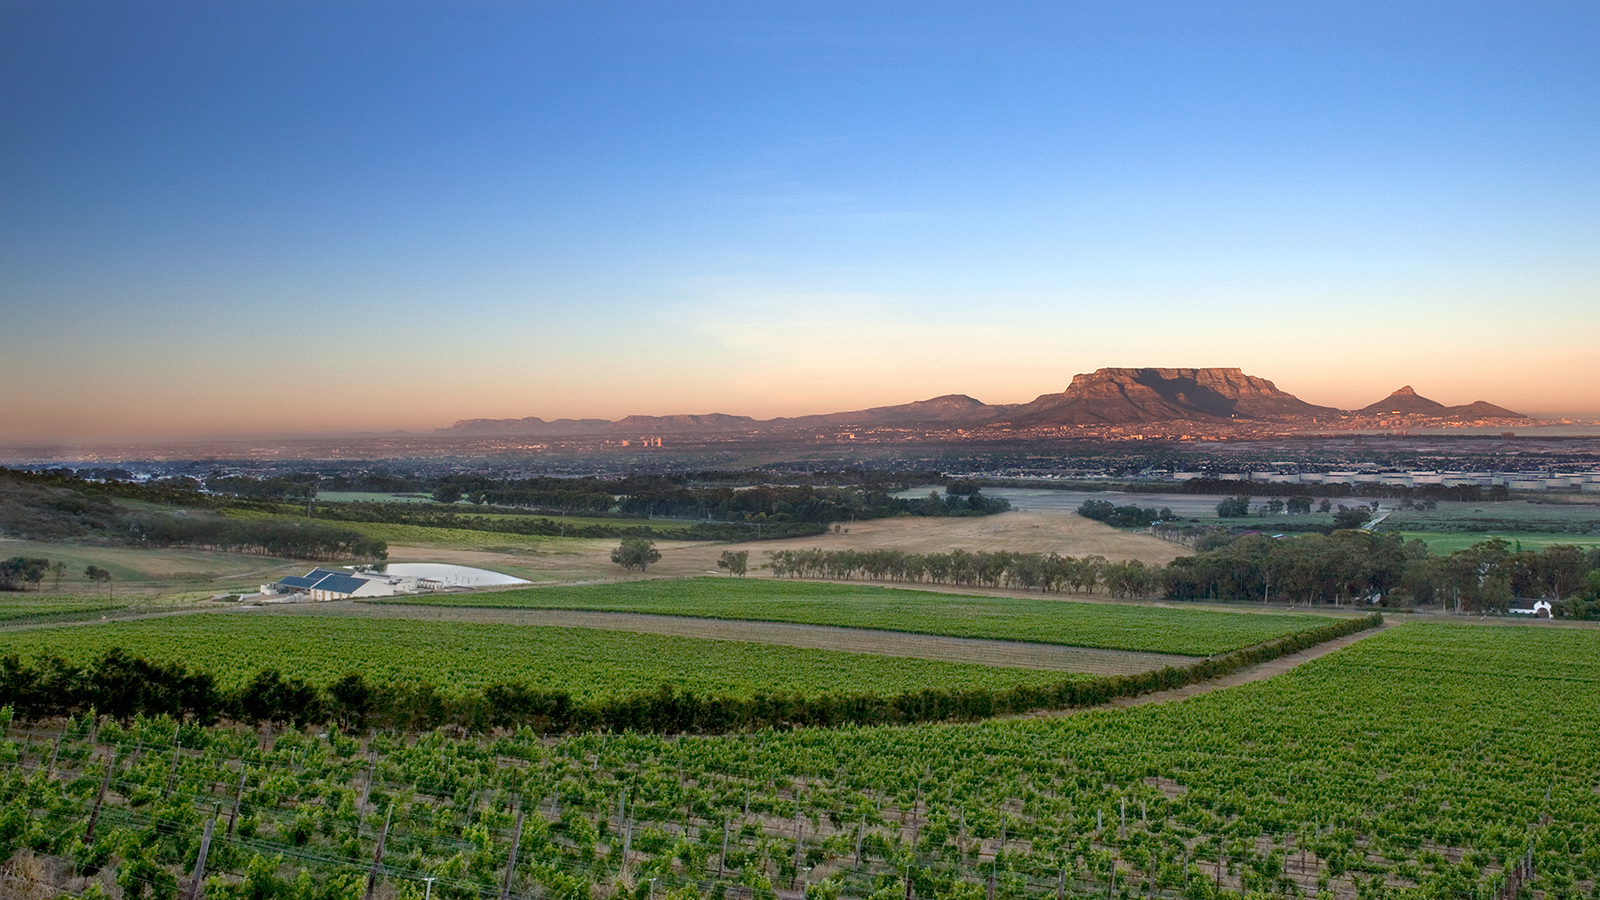 South Africa Gains New Appellation With A Familiar Name: Cape Town photo